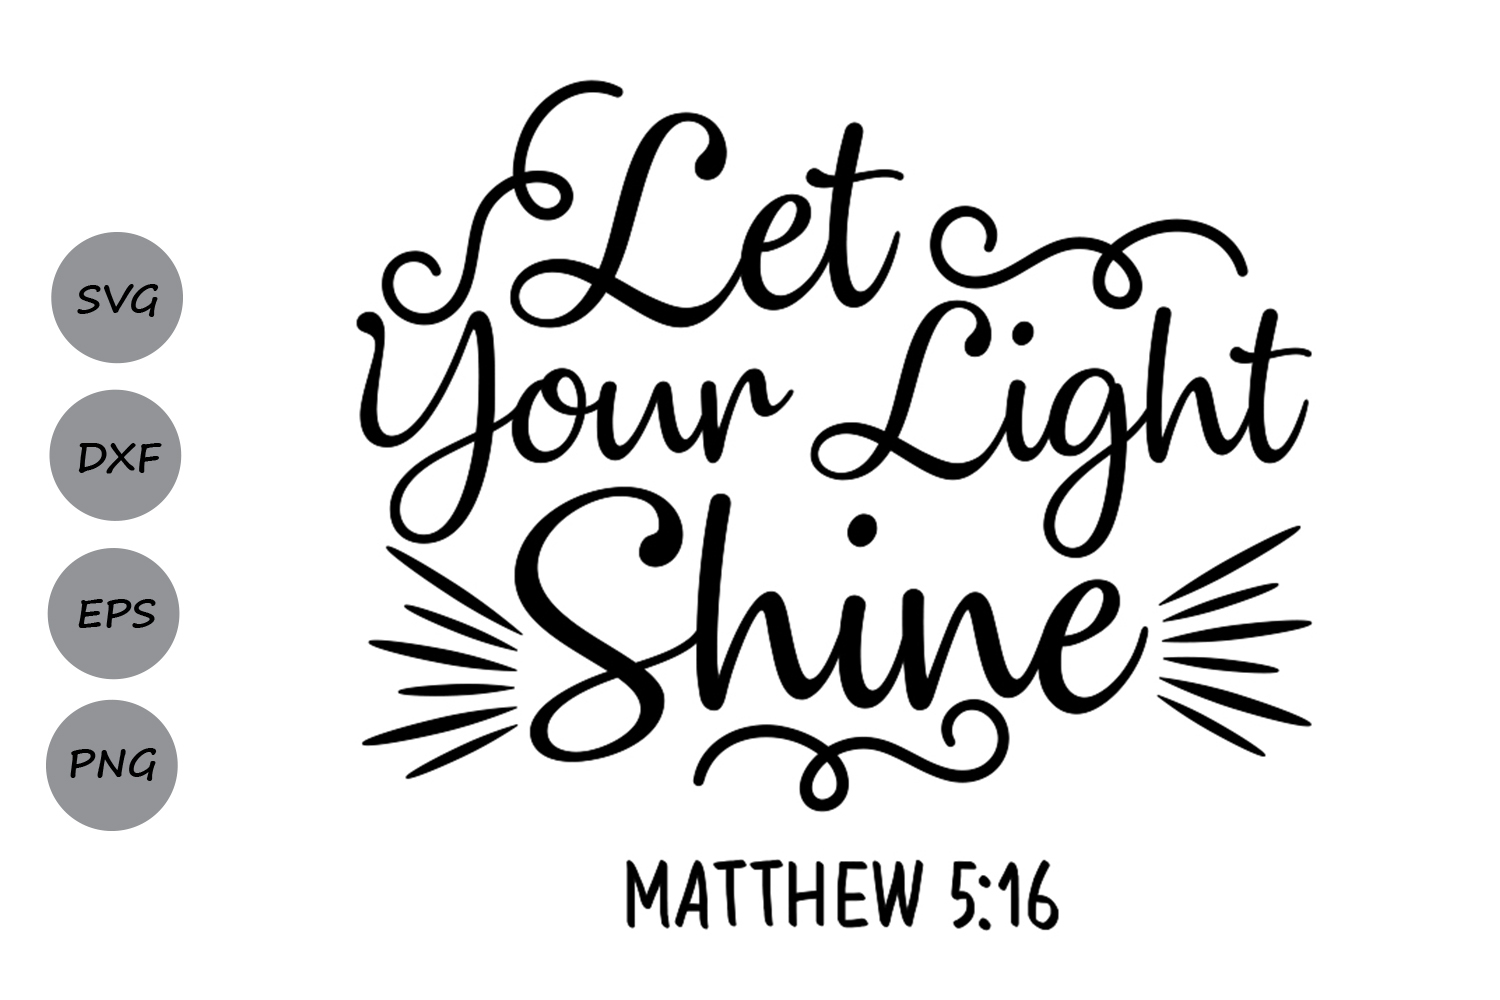 Download Free Let Your Light Shine Svg Graphic By Cosmosfineart Creative Fabrica for Cricut Explore, Silhouette and other cutting machines.